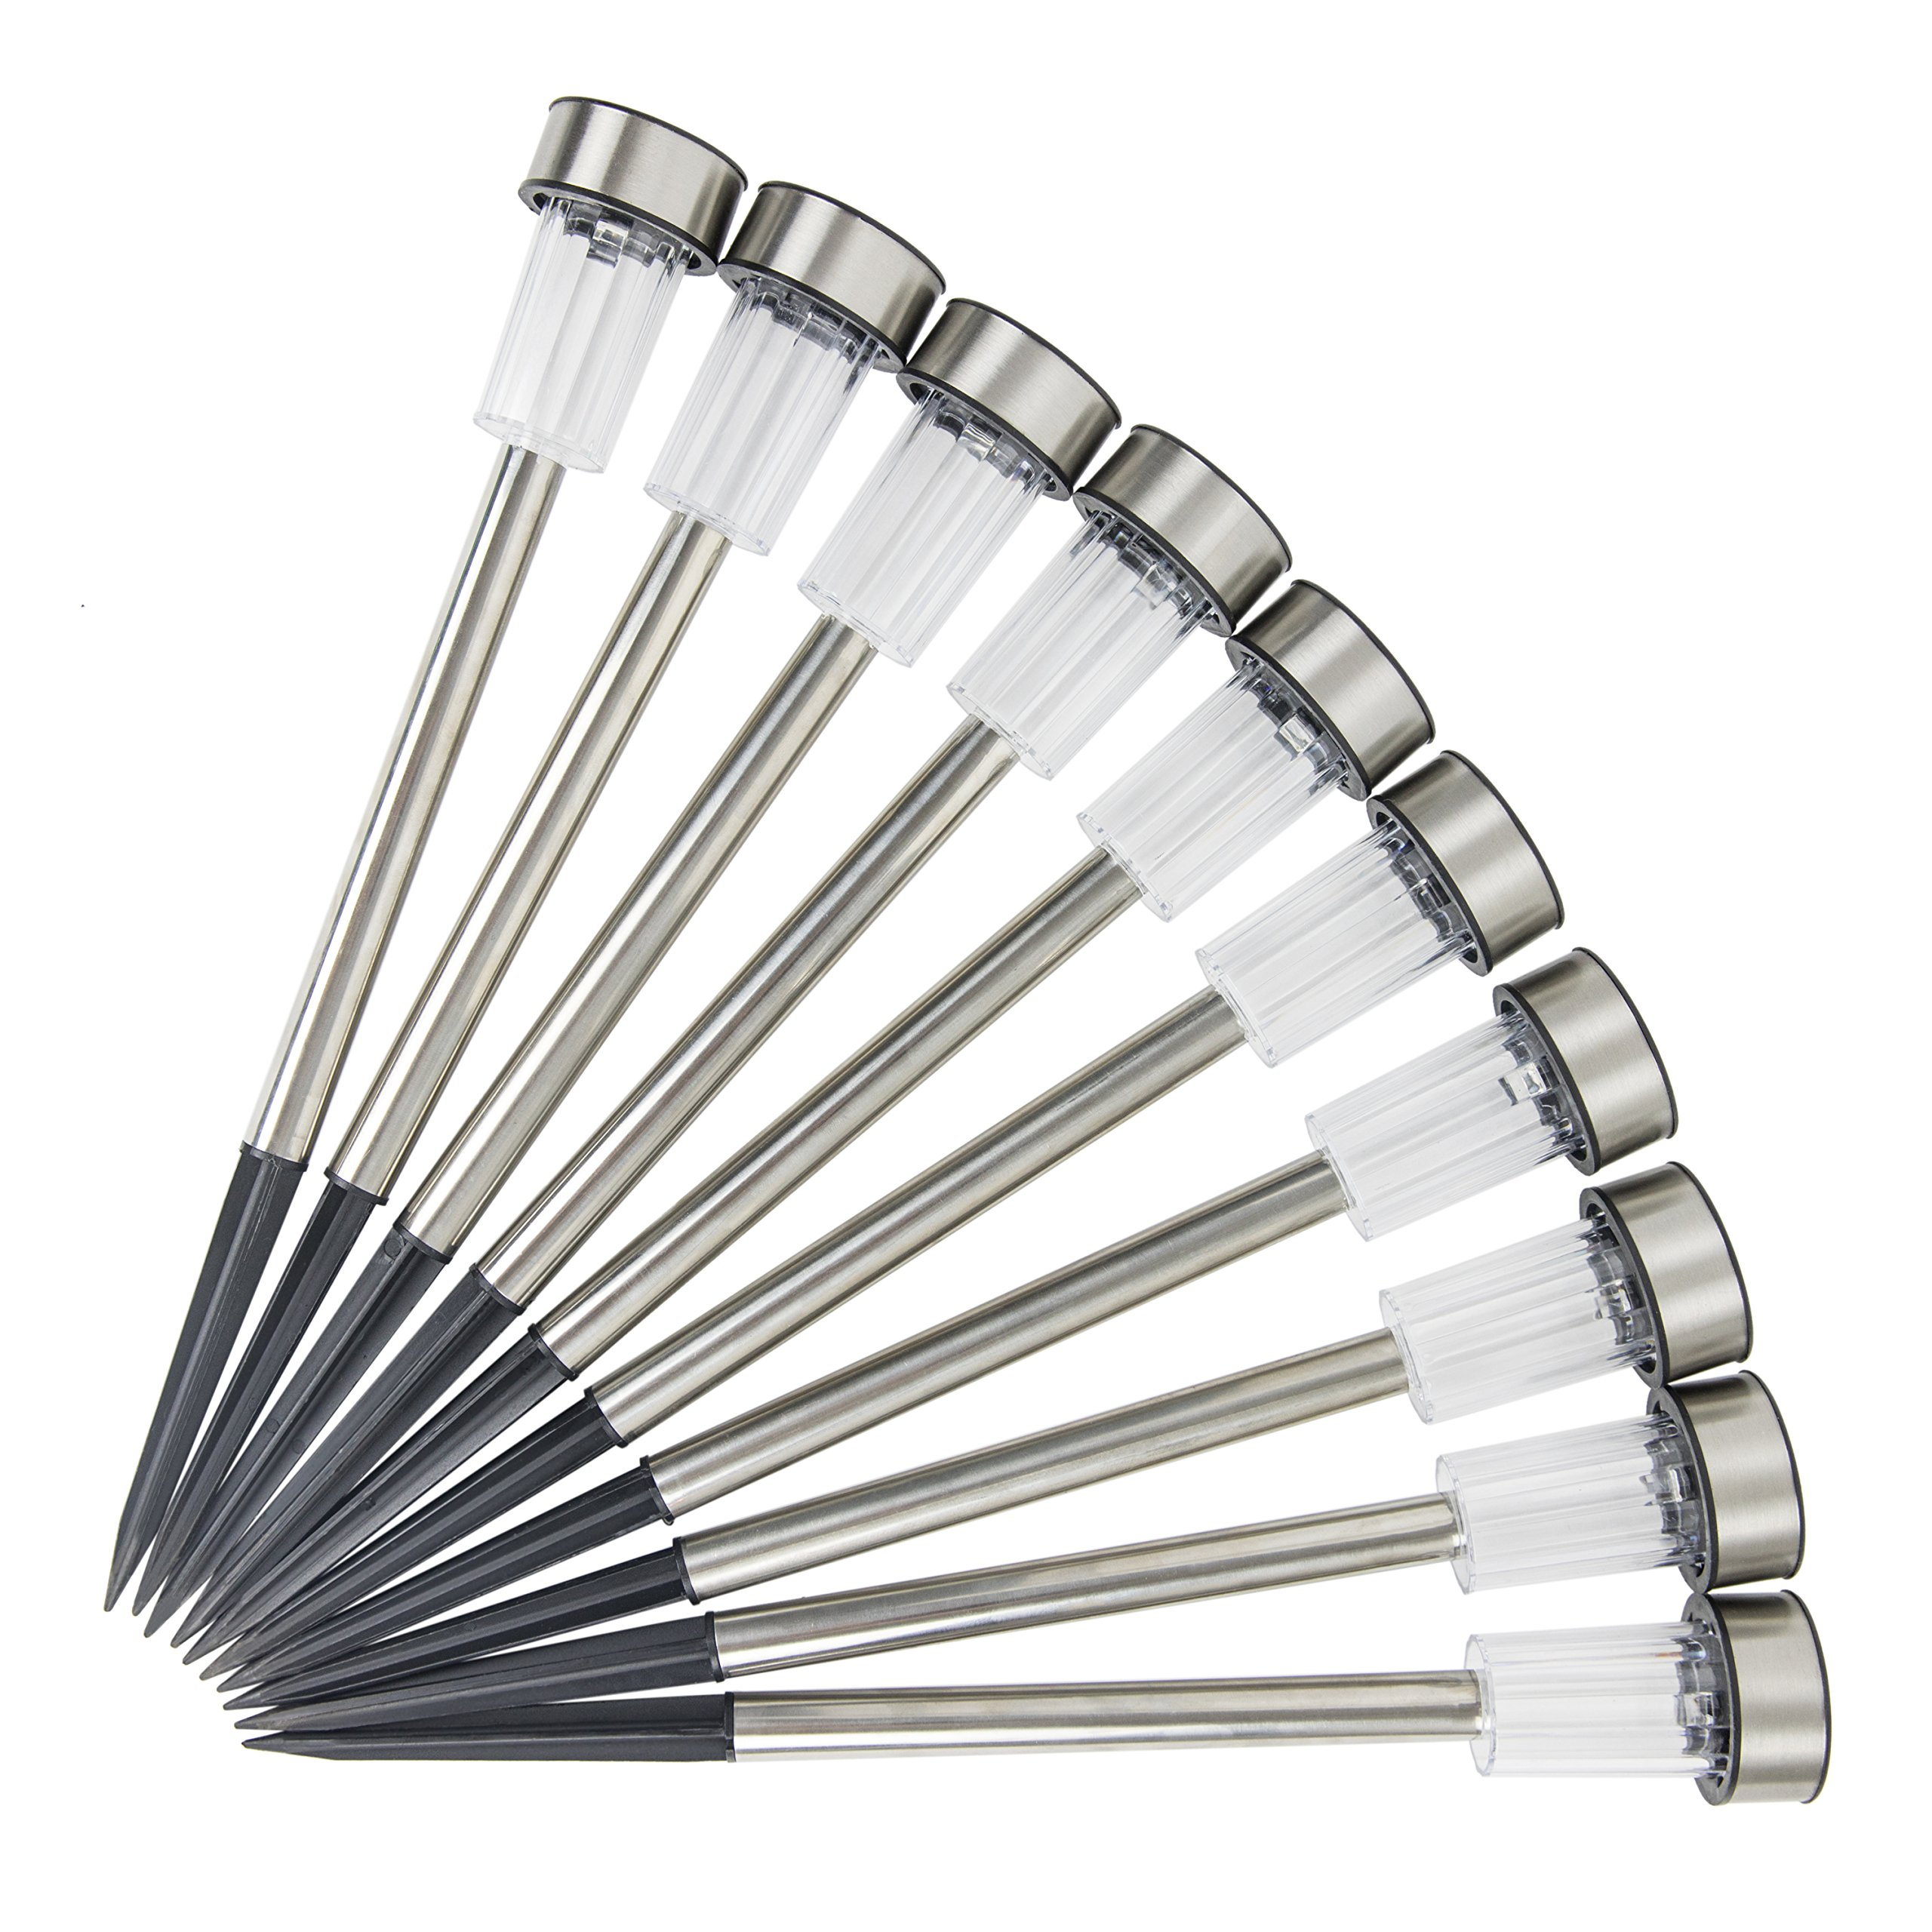 Logical Luxury Decorative Outdoor Solar Garden Lights (10 Pack) enhances Pathways driveways patios and gazebos; Classic Simple Stainless Steel Design; Soft White LED Powered; Water/Weatherproof by Logical Luxury (Image #3)